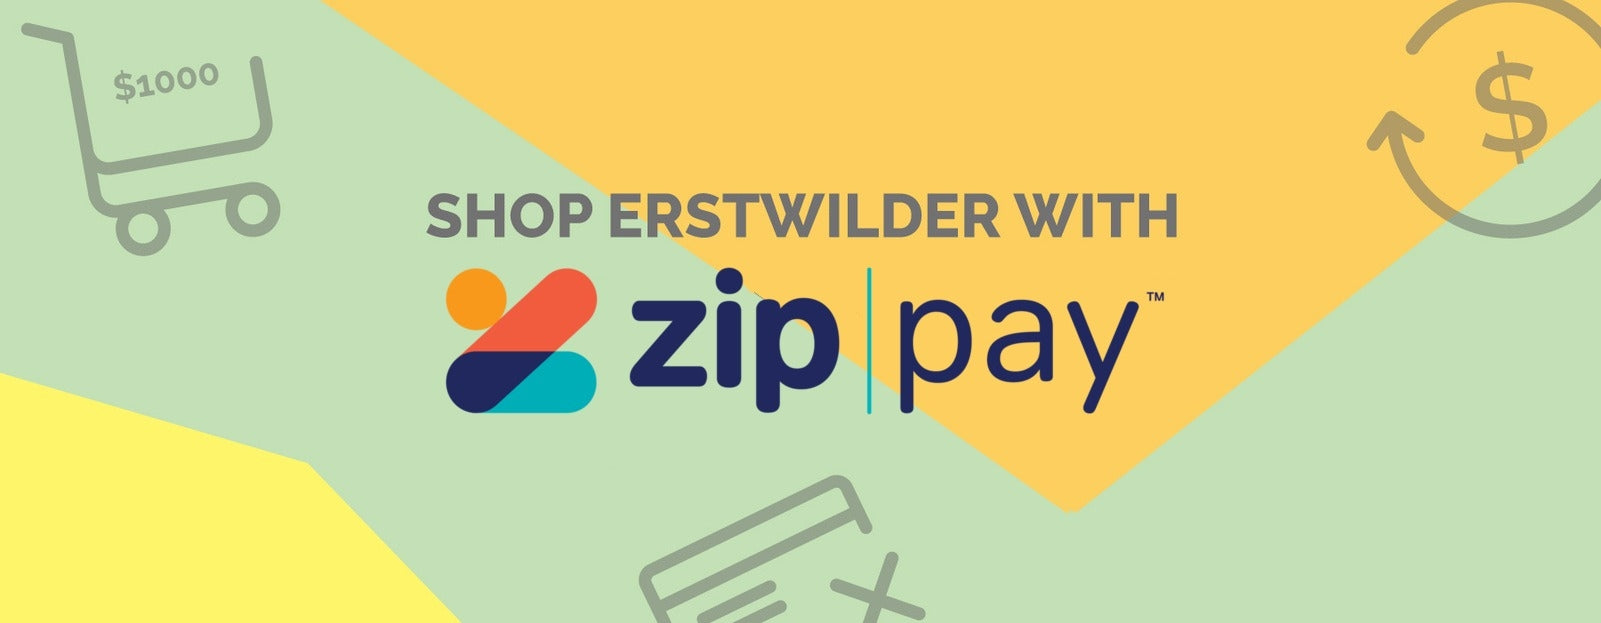 Shop Erstwilder with Zippay